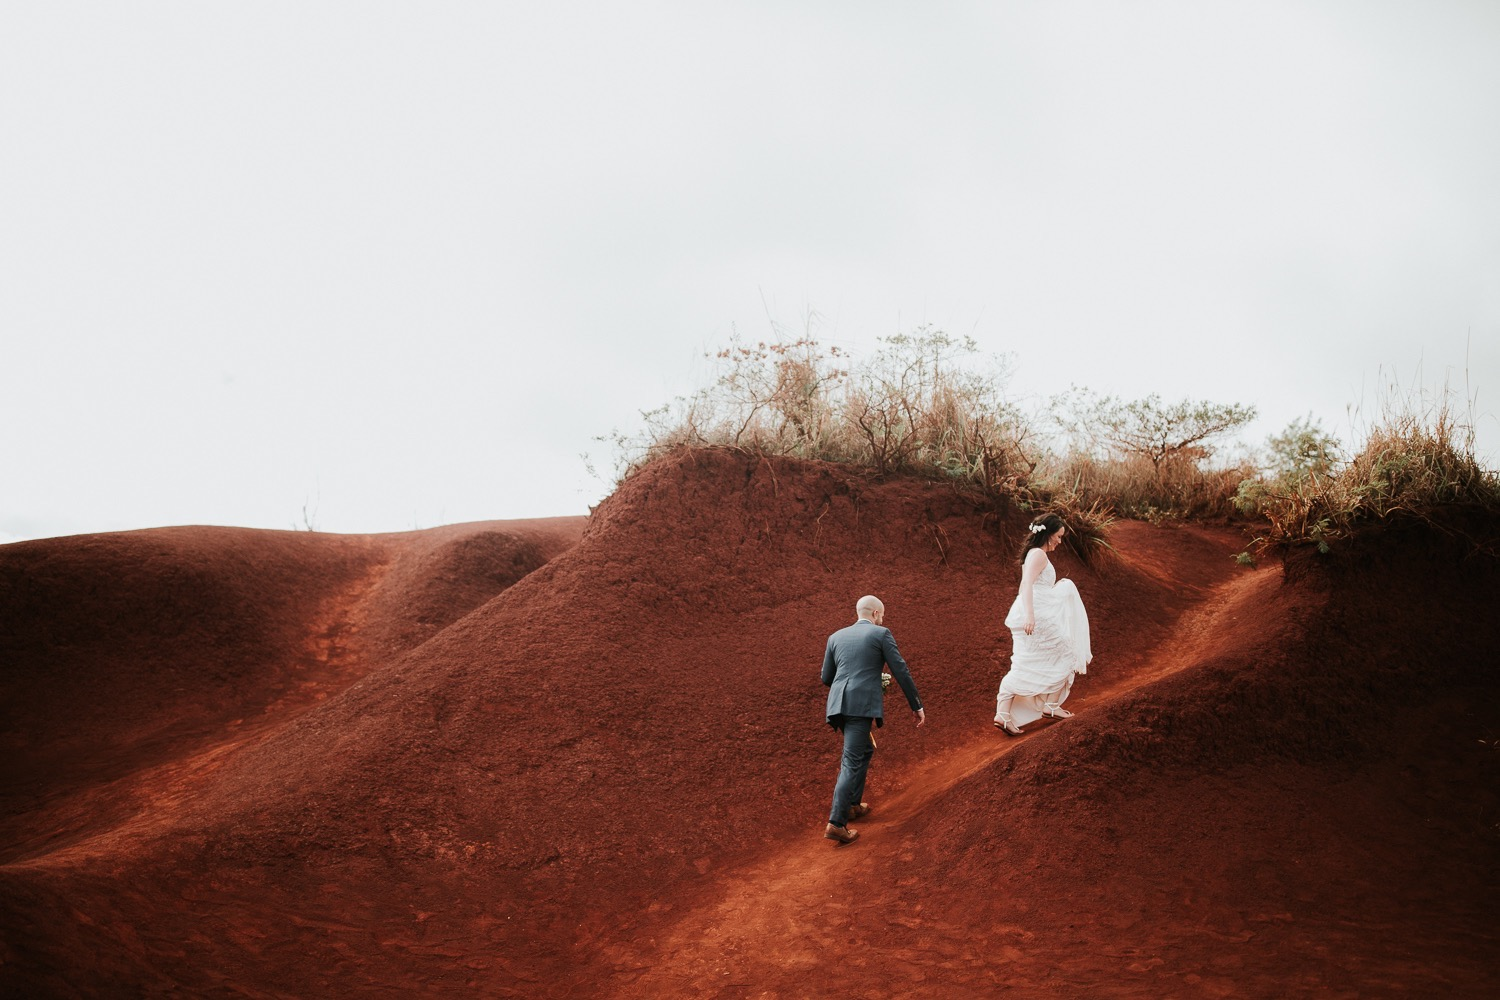 31_47_married_falls_waimea_canyon_reddirt_hawaii_destinationwedding.jpg